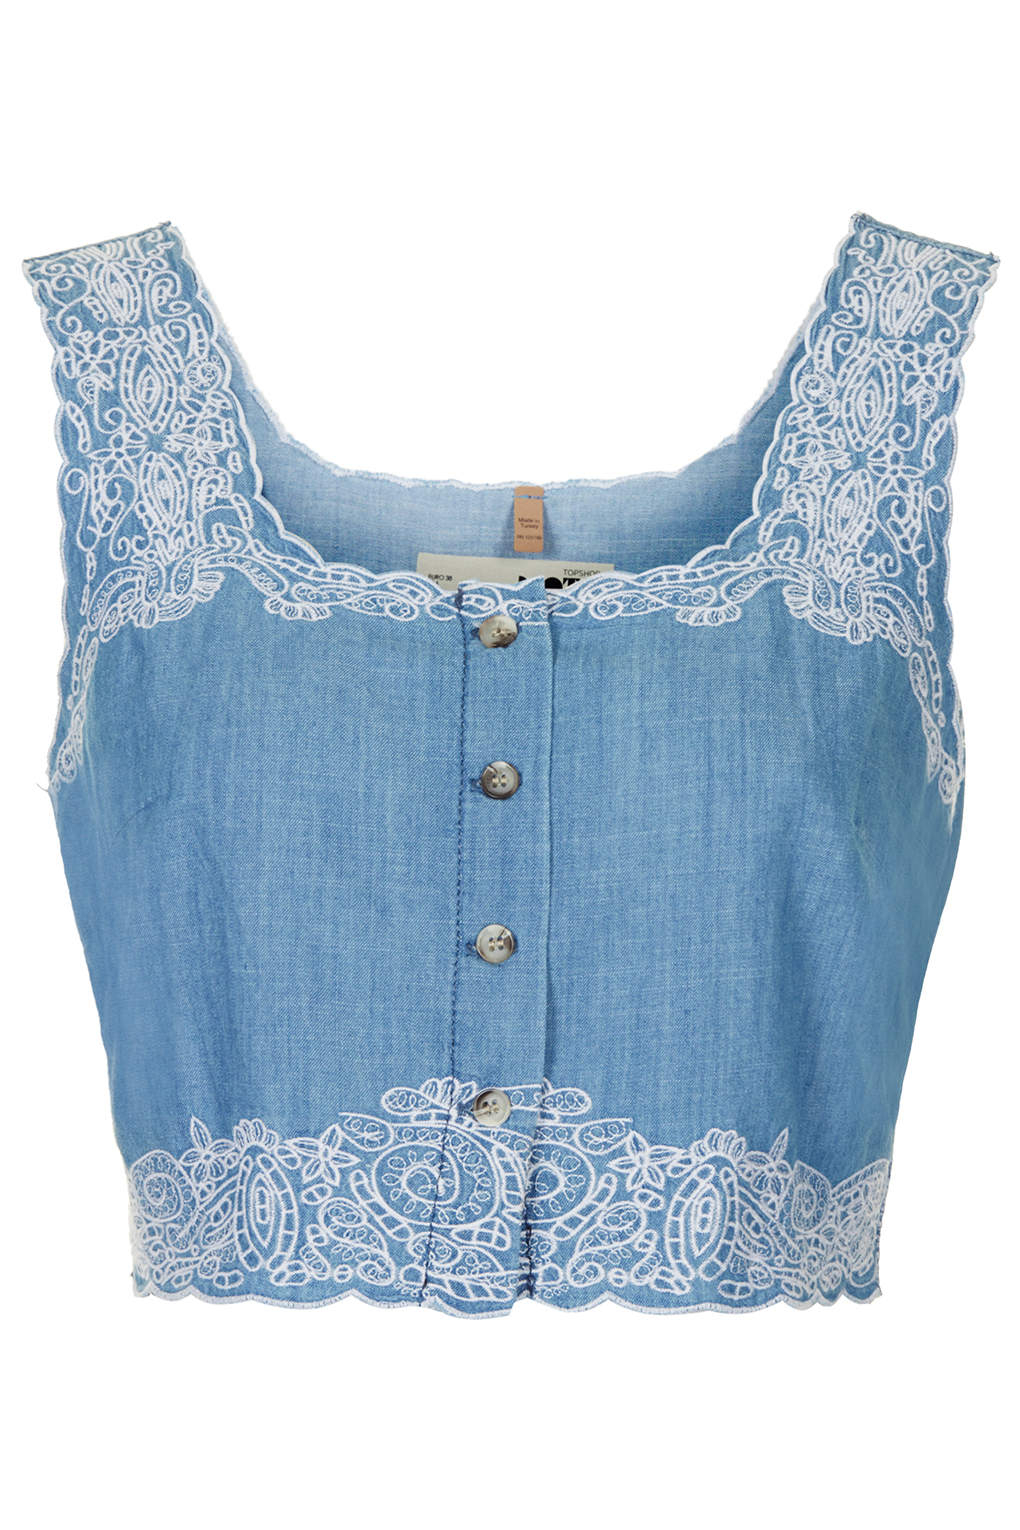 Topshop blue moto embroidered crop top bnwt uk us